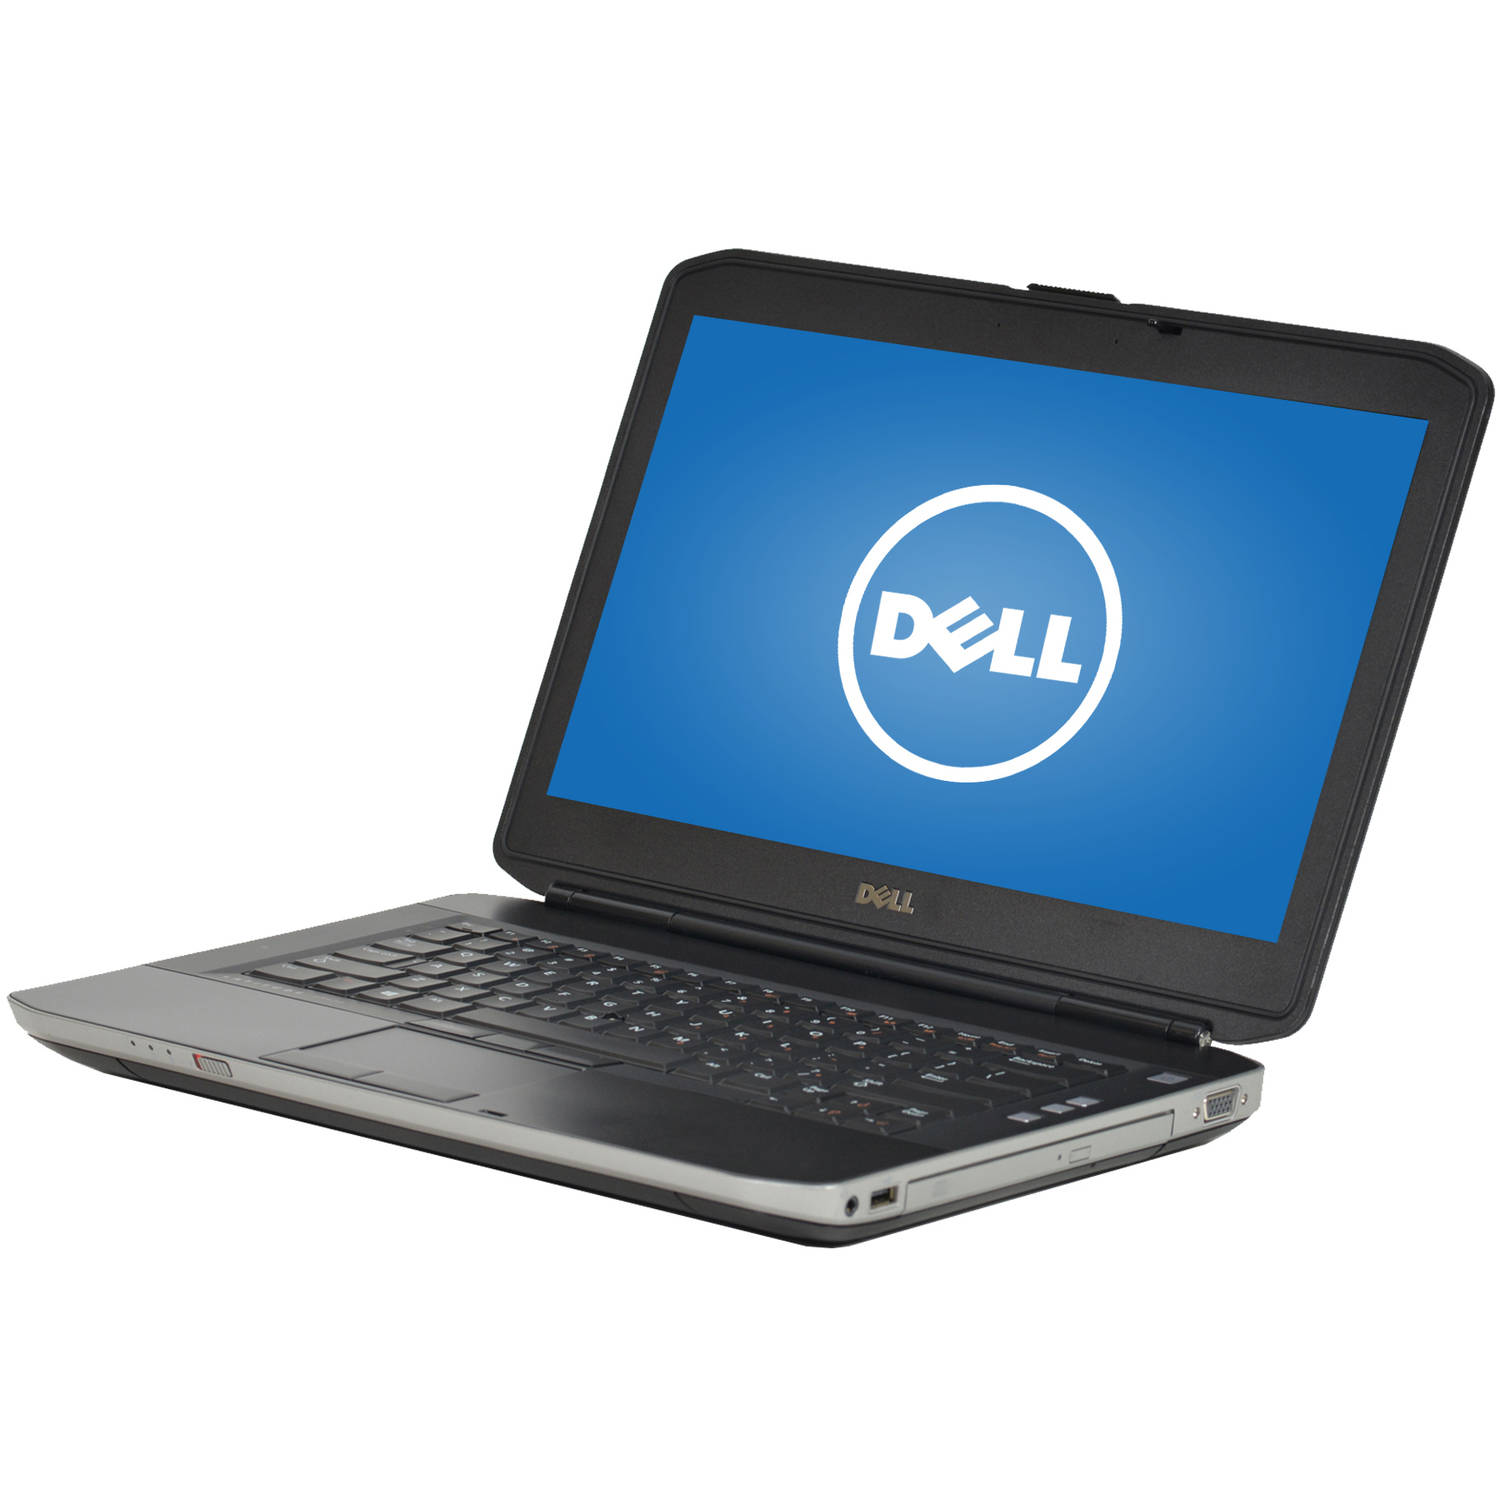 "Refurbished Dell Black 14"" Latitude E5430 WA5-1045 Laptop PC with Intel Core i5-3320M Processor, 4GB Memory, 128GB Solid State Drive and Windows 10 Pro"